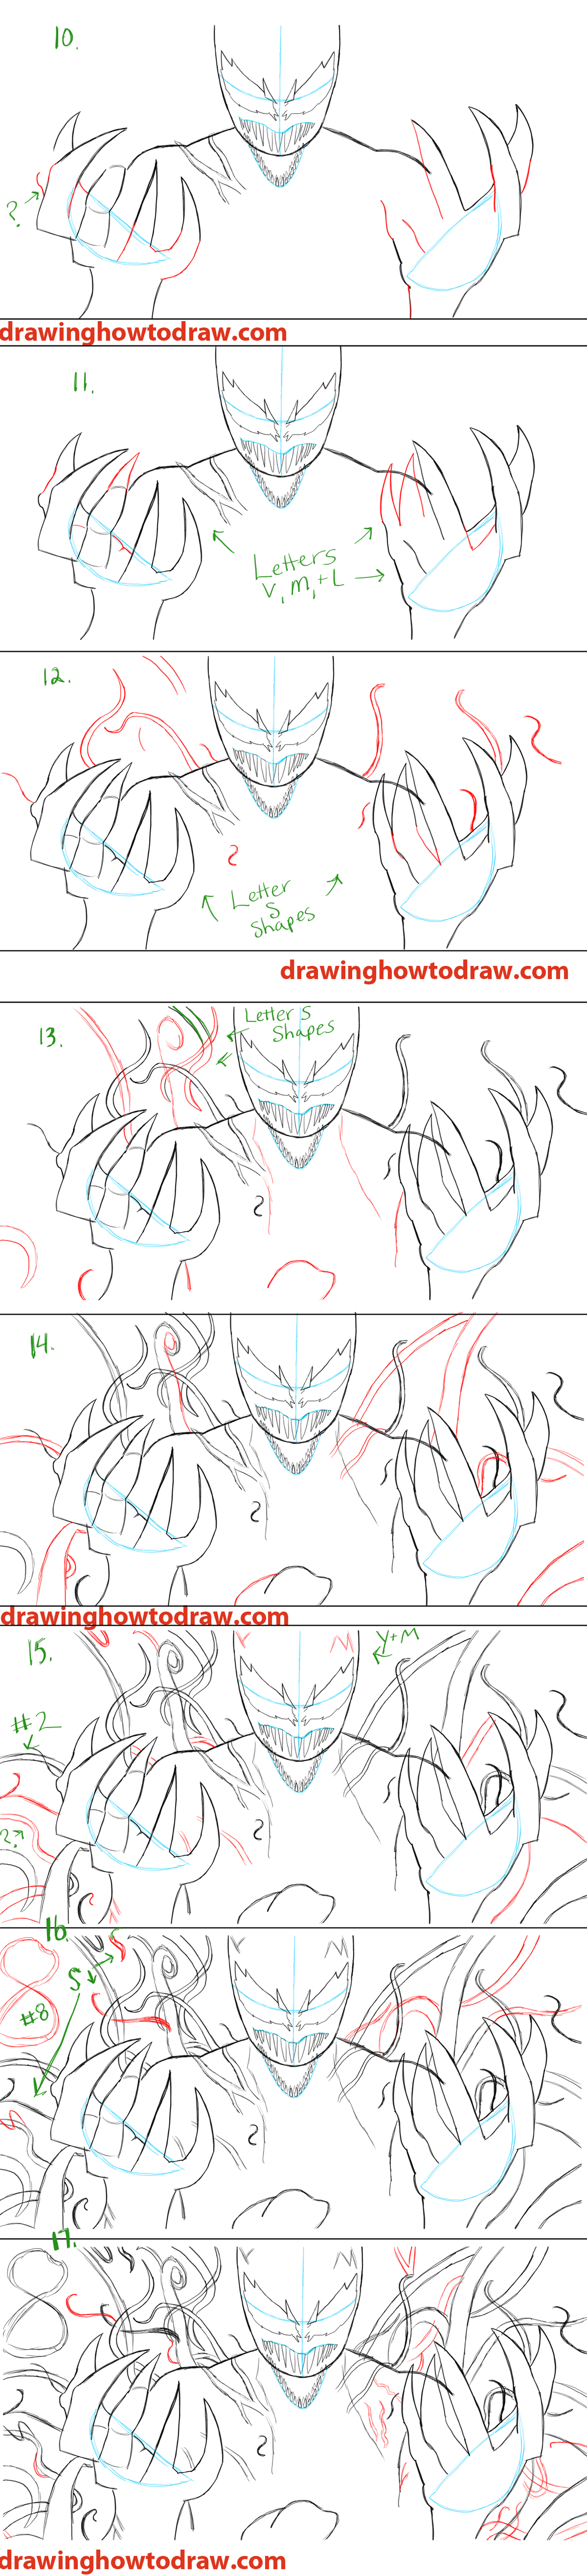 Scribble Drawing Tutorial : How to draw spiderman carnage from marvel comics step by